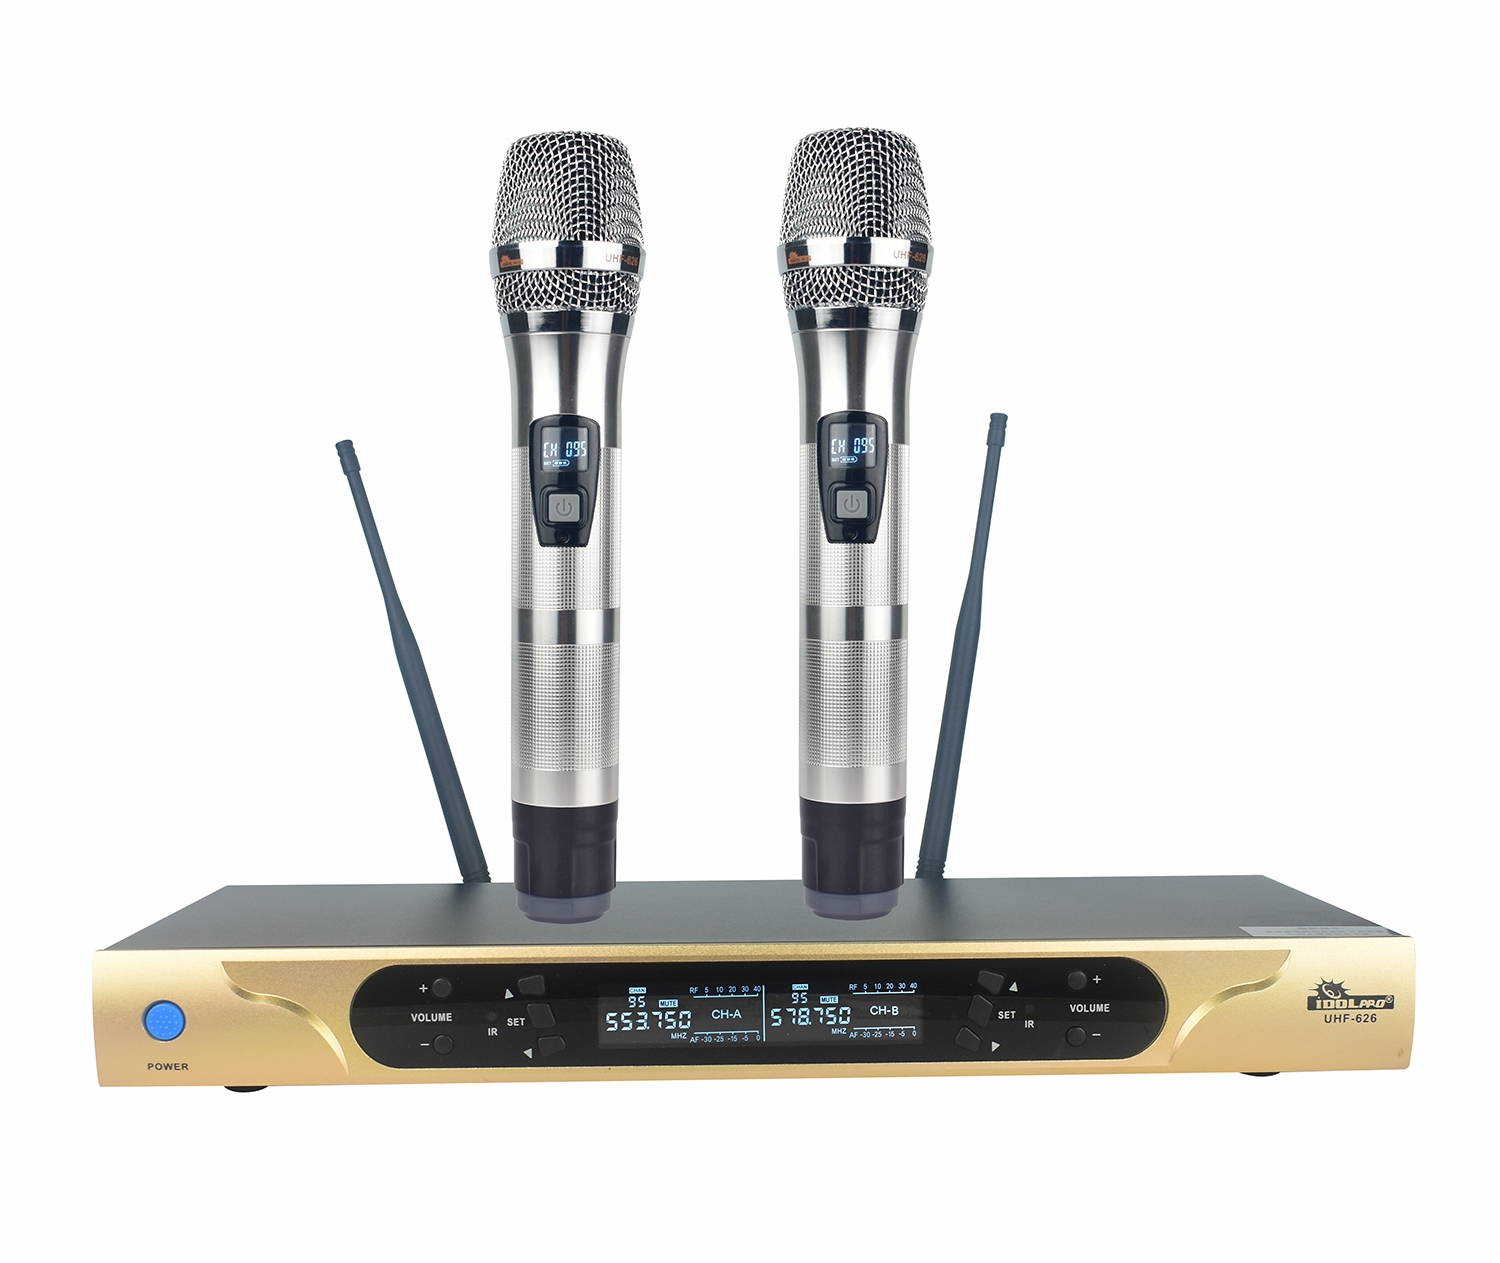 IDOLpro UHF-626 Dual Channel Wireless Microphones With New Digital Technology